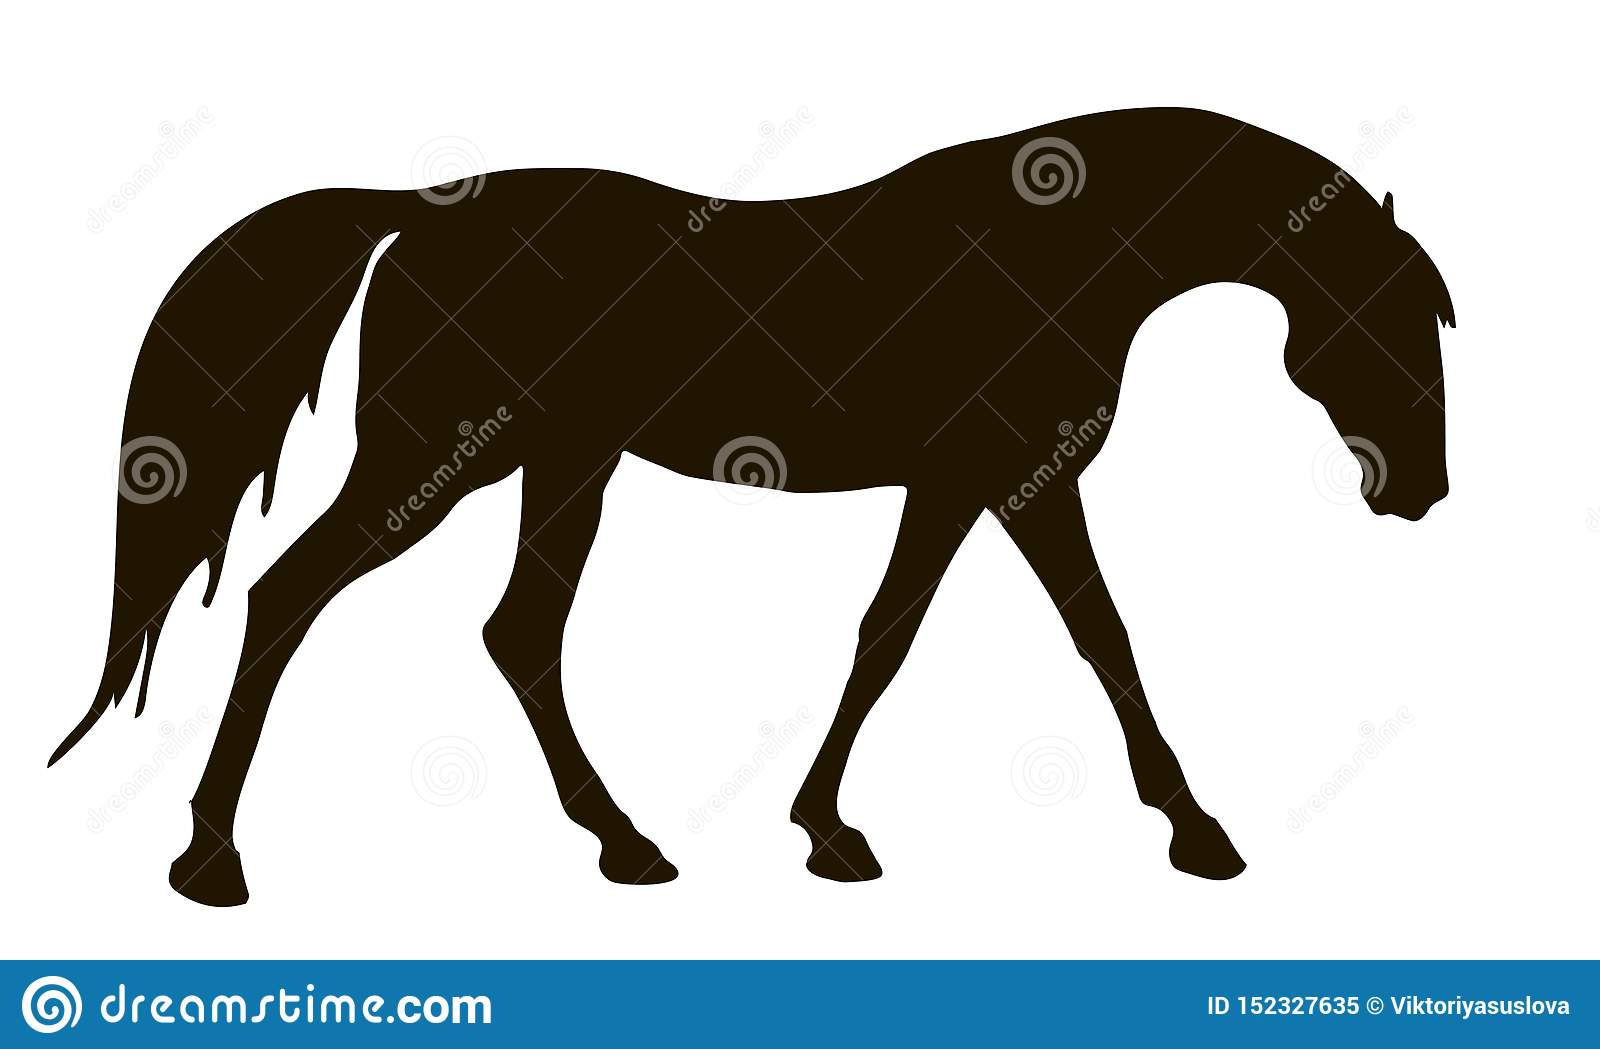 Isolated Image Black Silhouette Of A Walking Horse On A White Background Stock Illustration Illustration Of Graphic Isolated 152327635